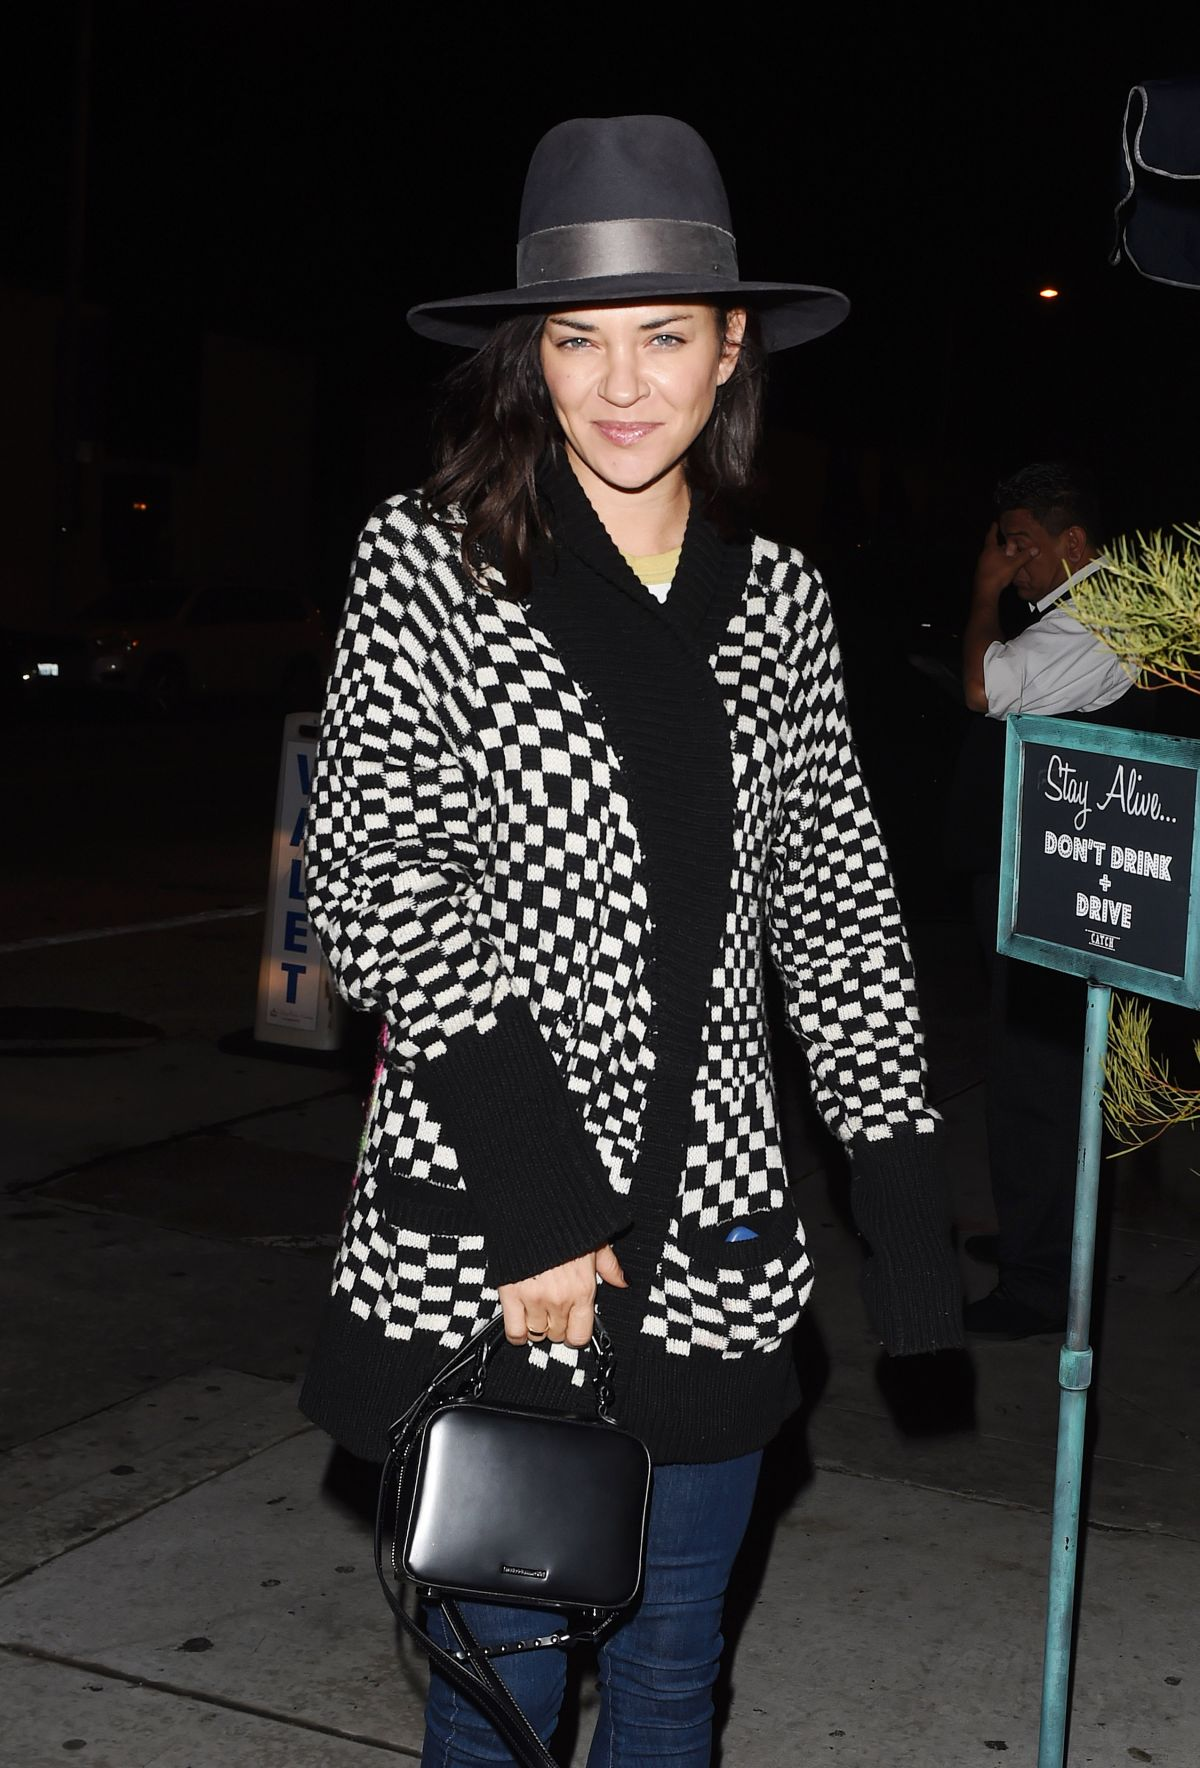 JESSICA SZOHR at Catch LA in West Hollywood 02/20/2017